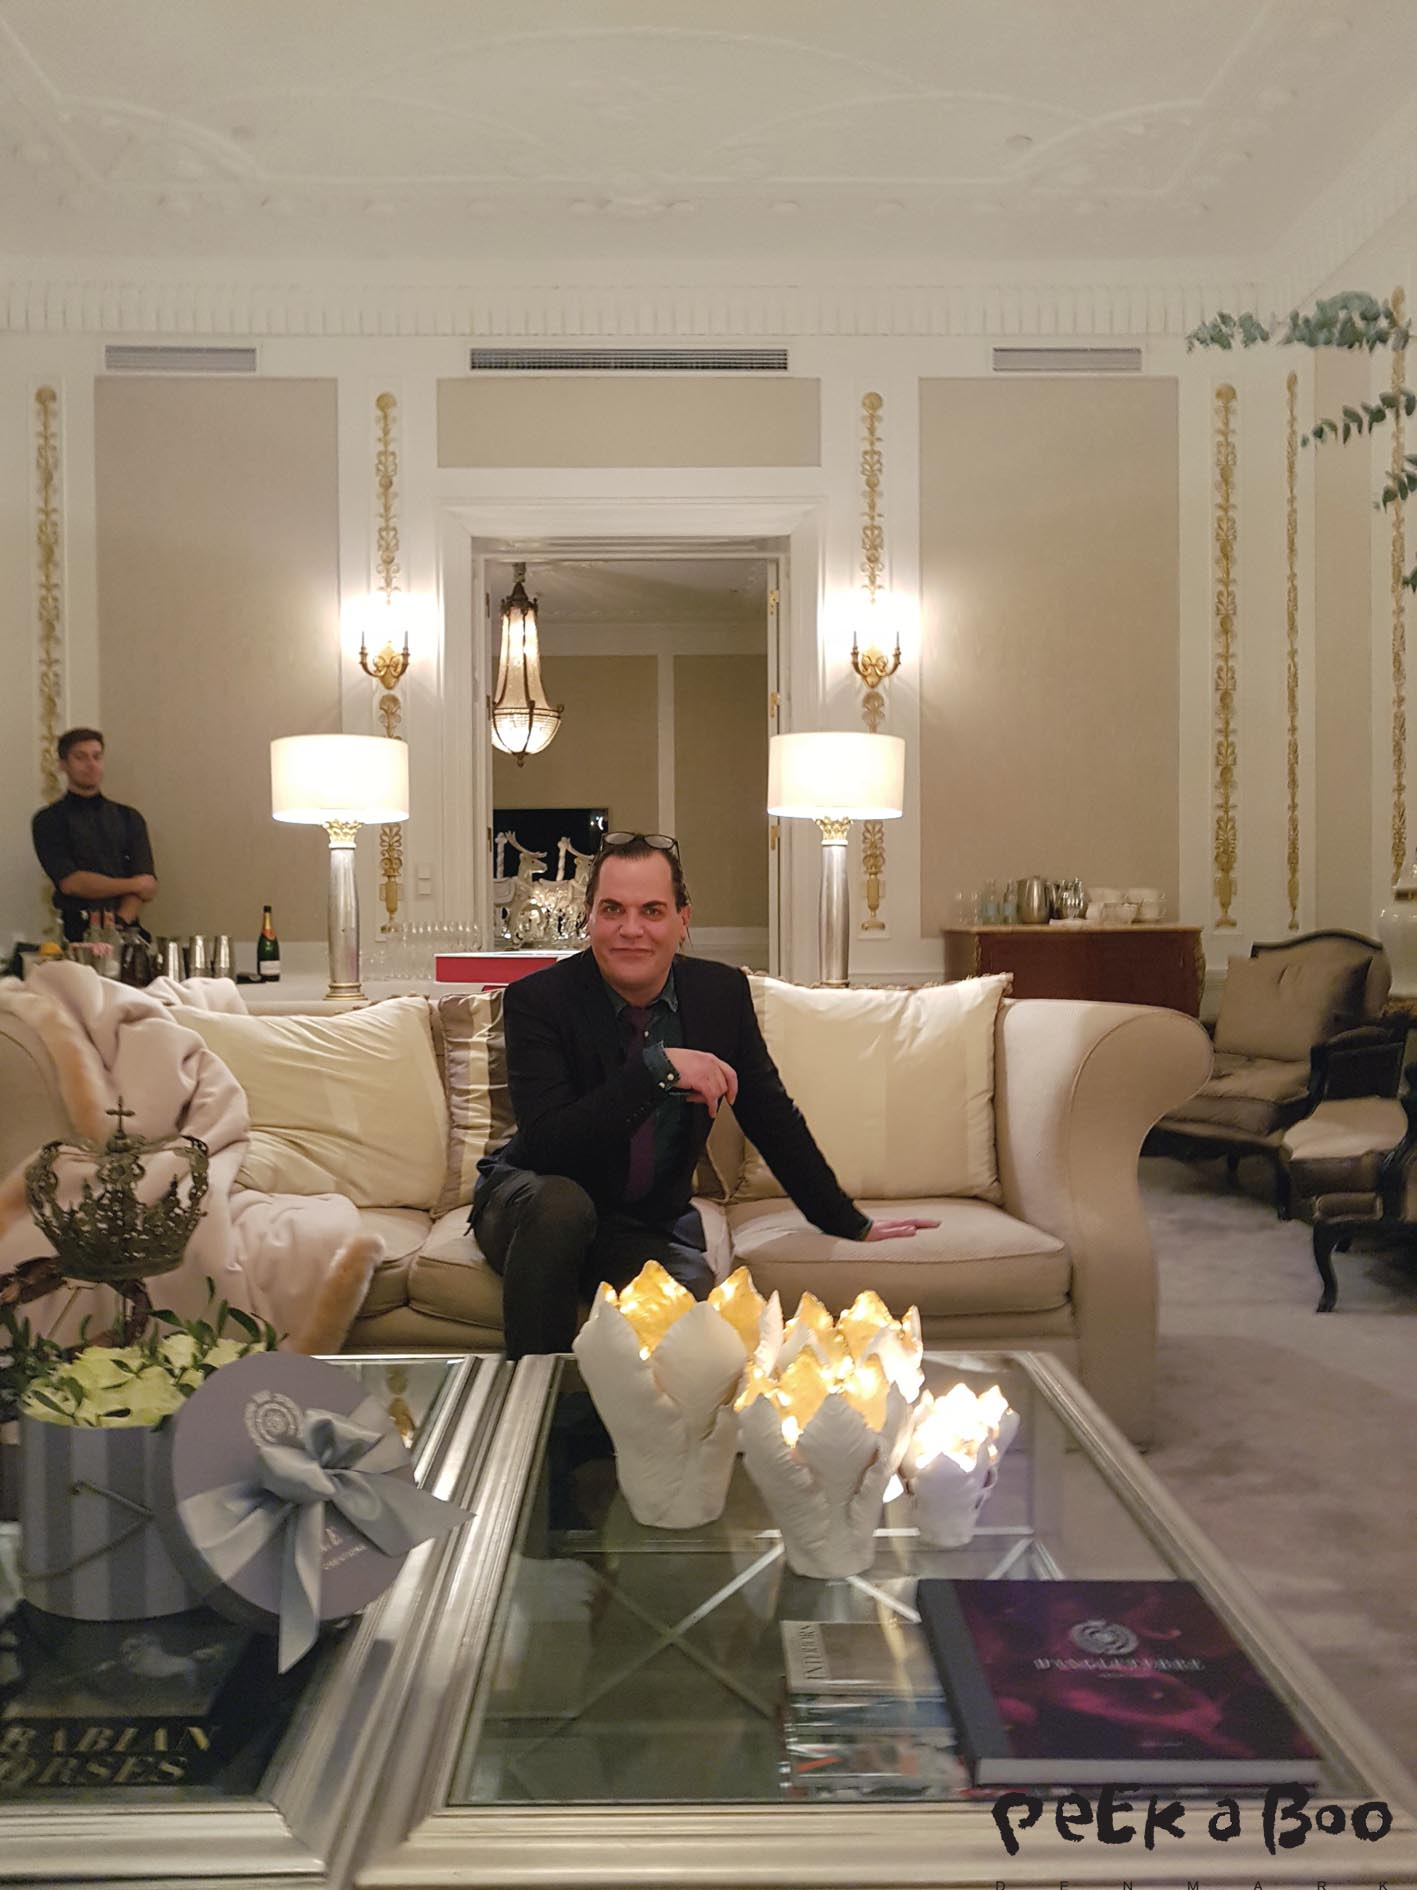 The talented Creative Director Alan Evensen in the Royal Suite of Hotel d'Angleterre.